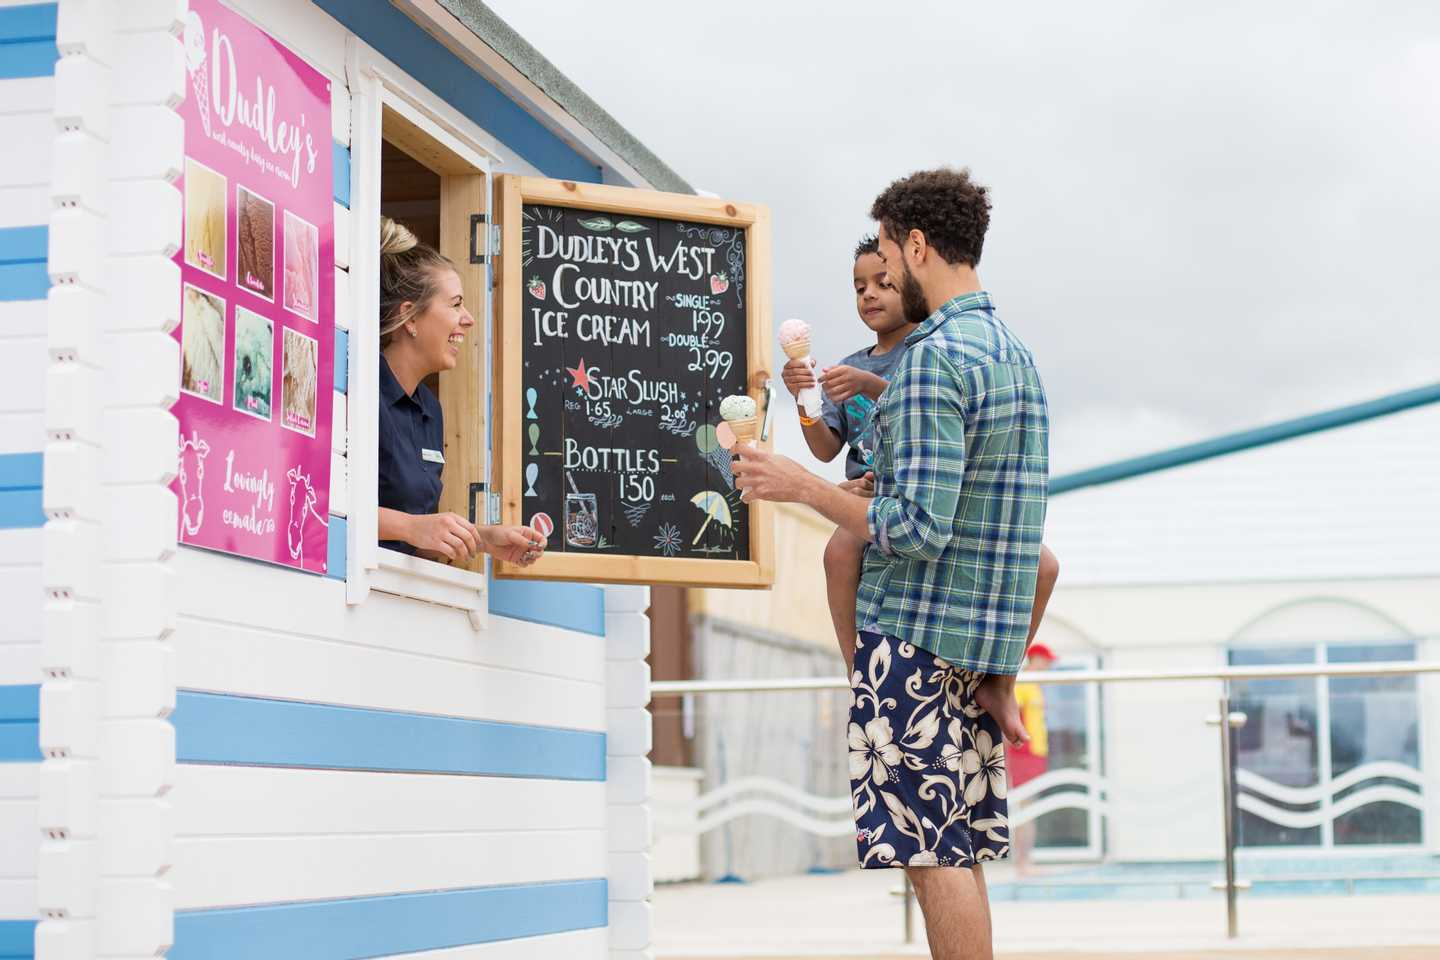 A father and child buying icecream